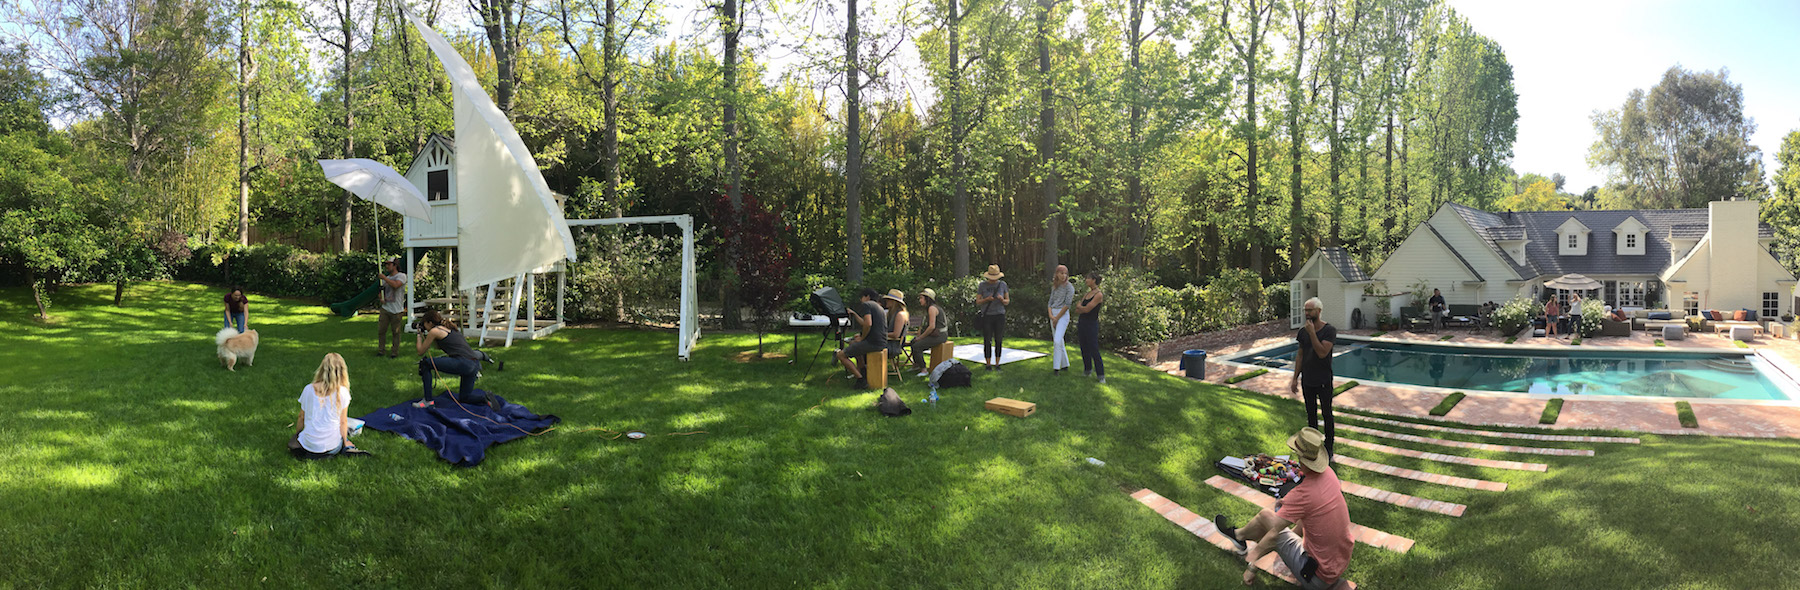 behind-the-scenes-dog-photographer-for-natural-balance-dog-food-commercial-campaign-panoramic.jpg